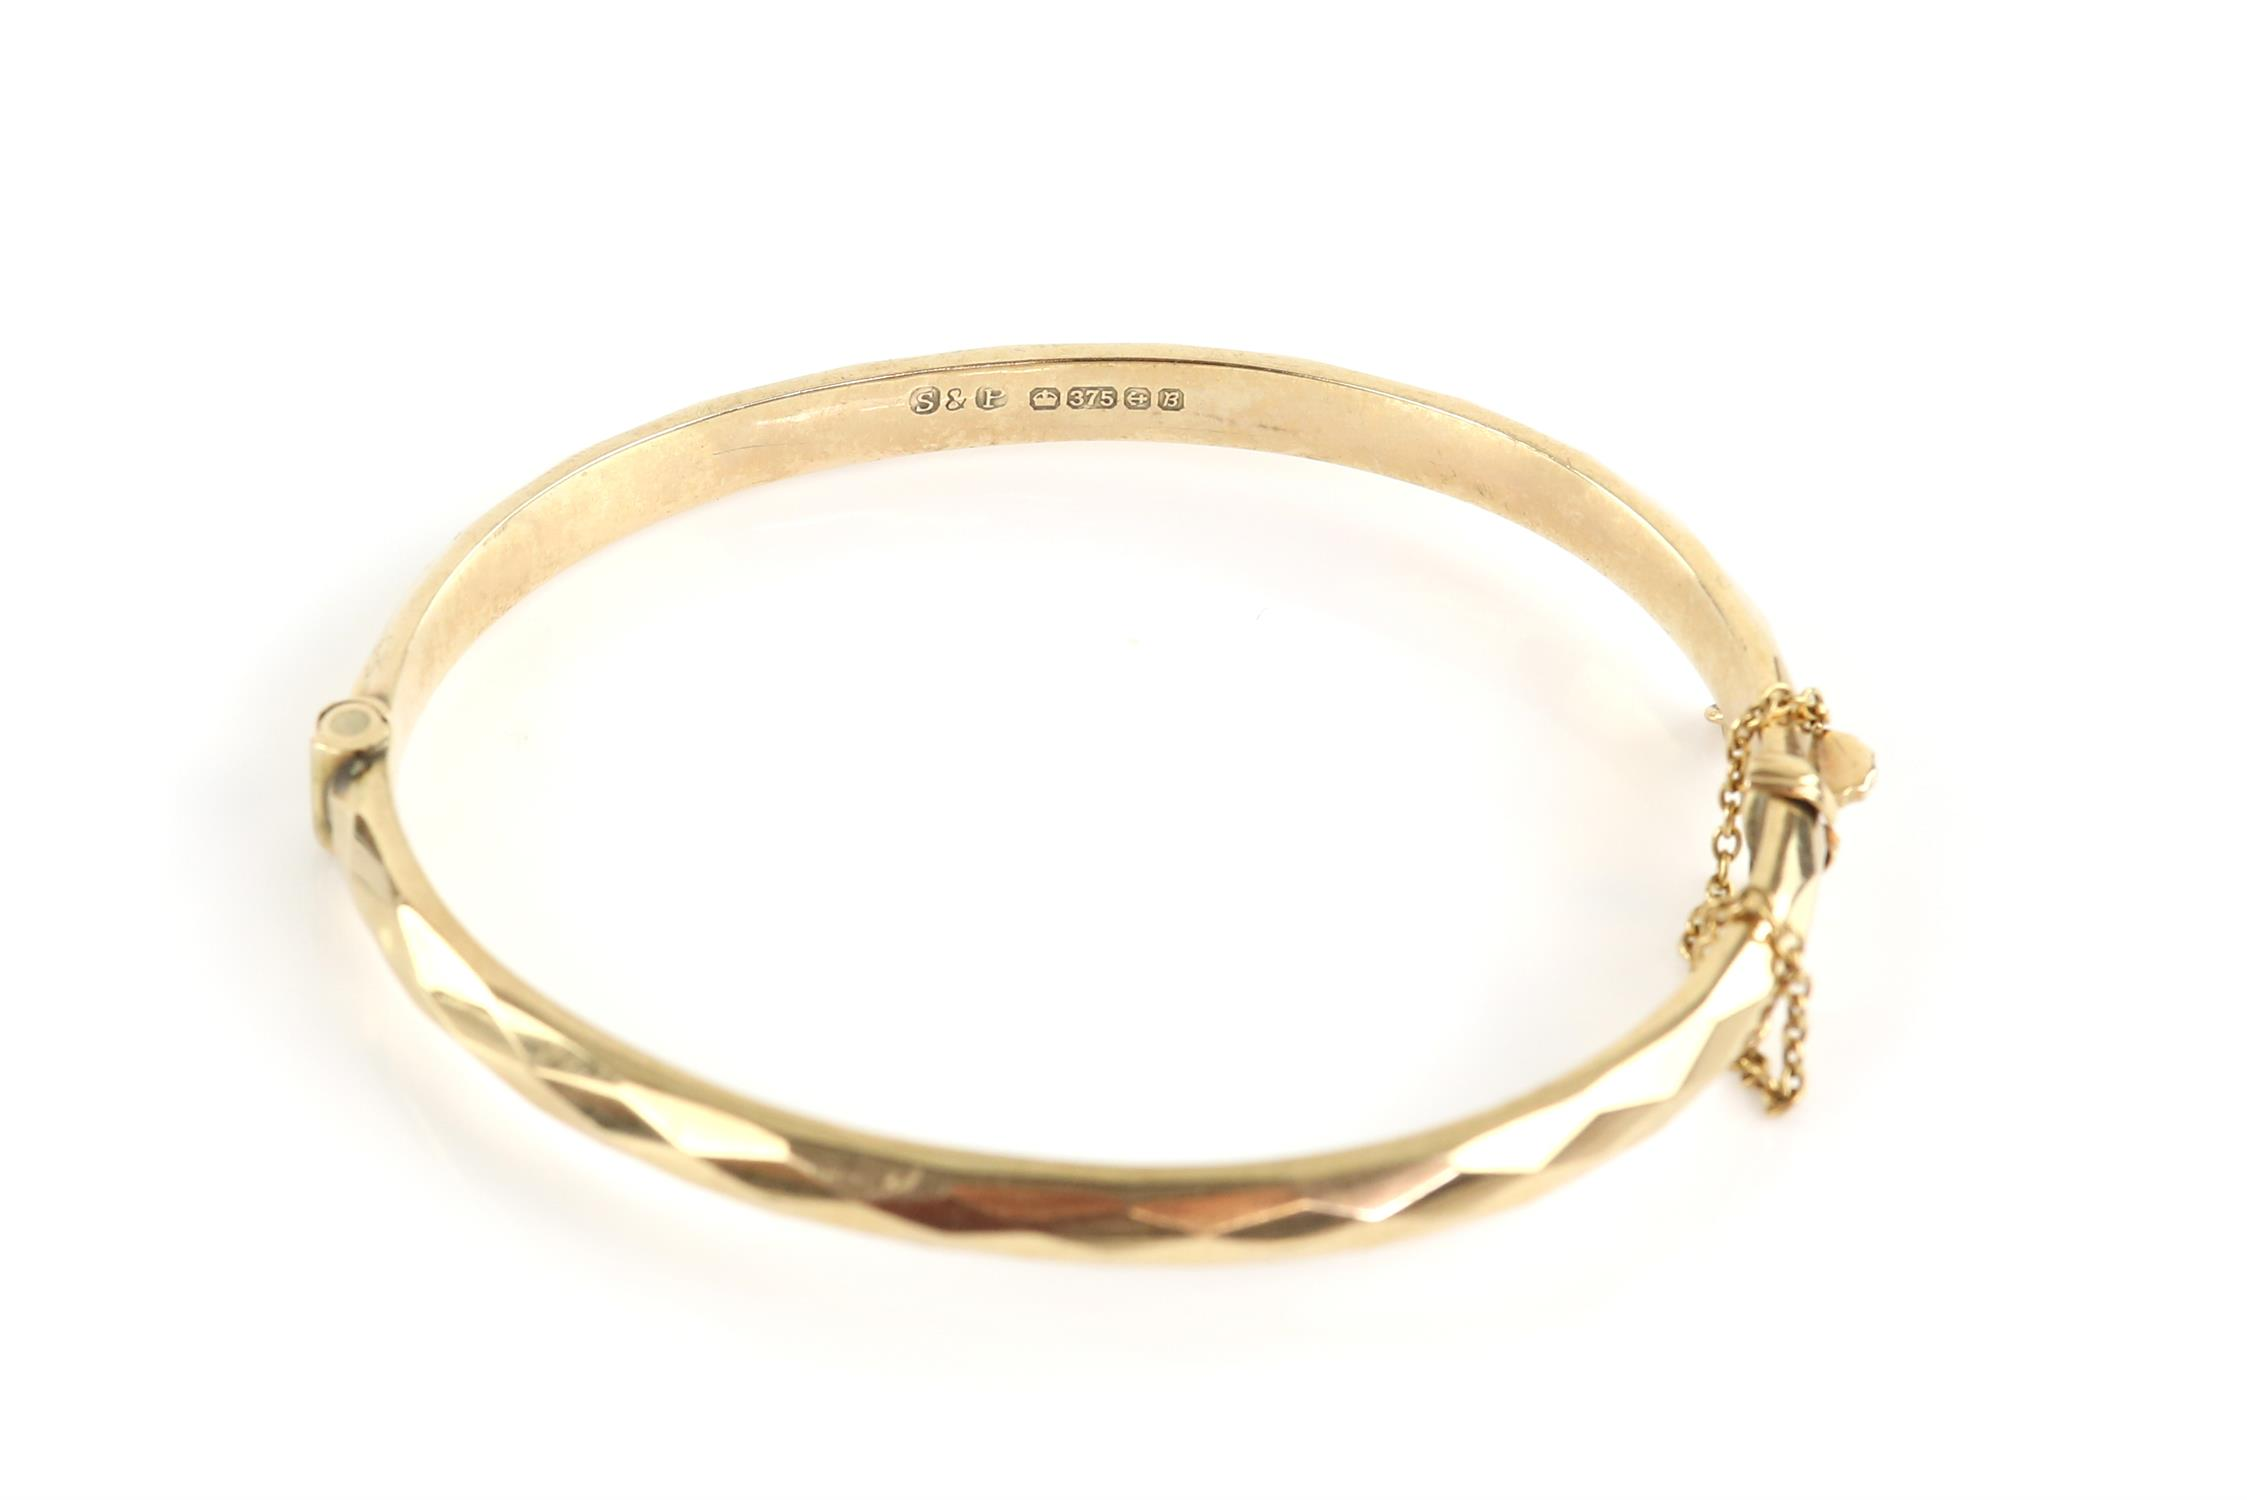 Vintage hinged bangle, diamond cut design to the outer edge, mounted in 9 ct gold, - Image 2 of 2